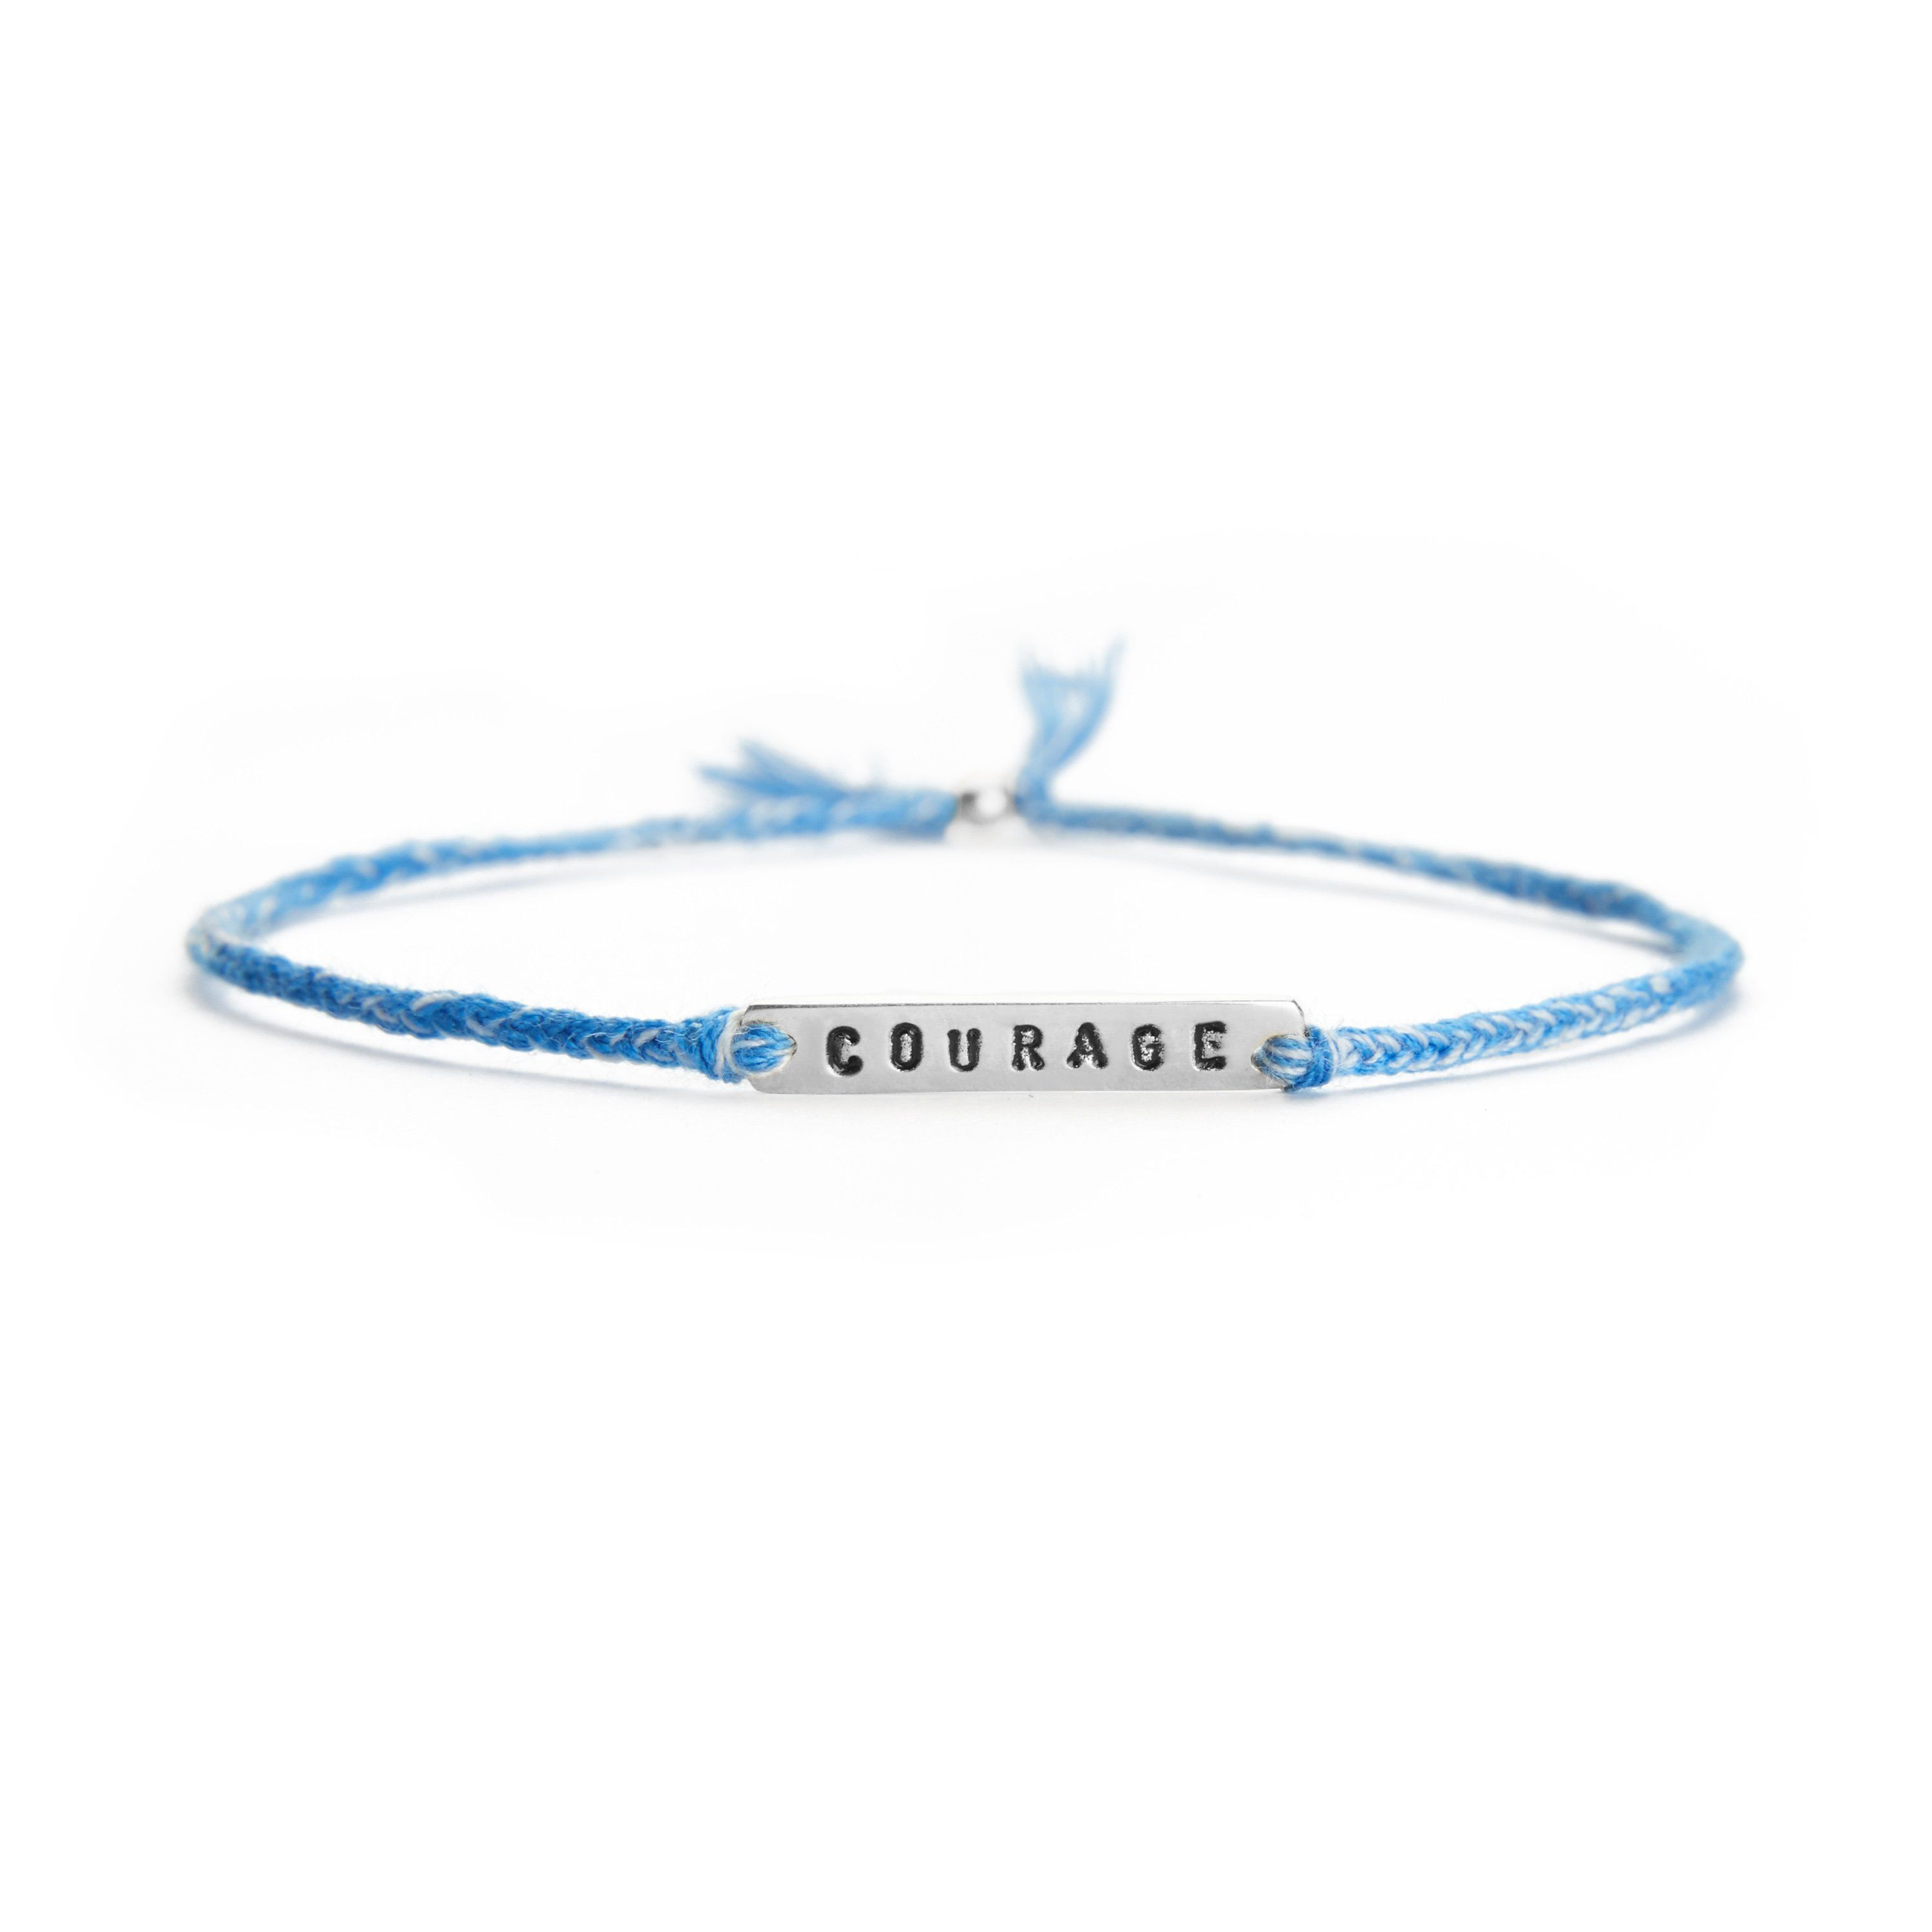 Courage blue mix silver handmade bracelet from Santai.no